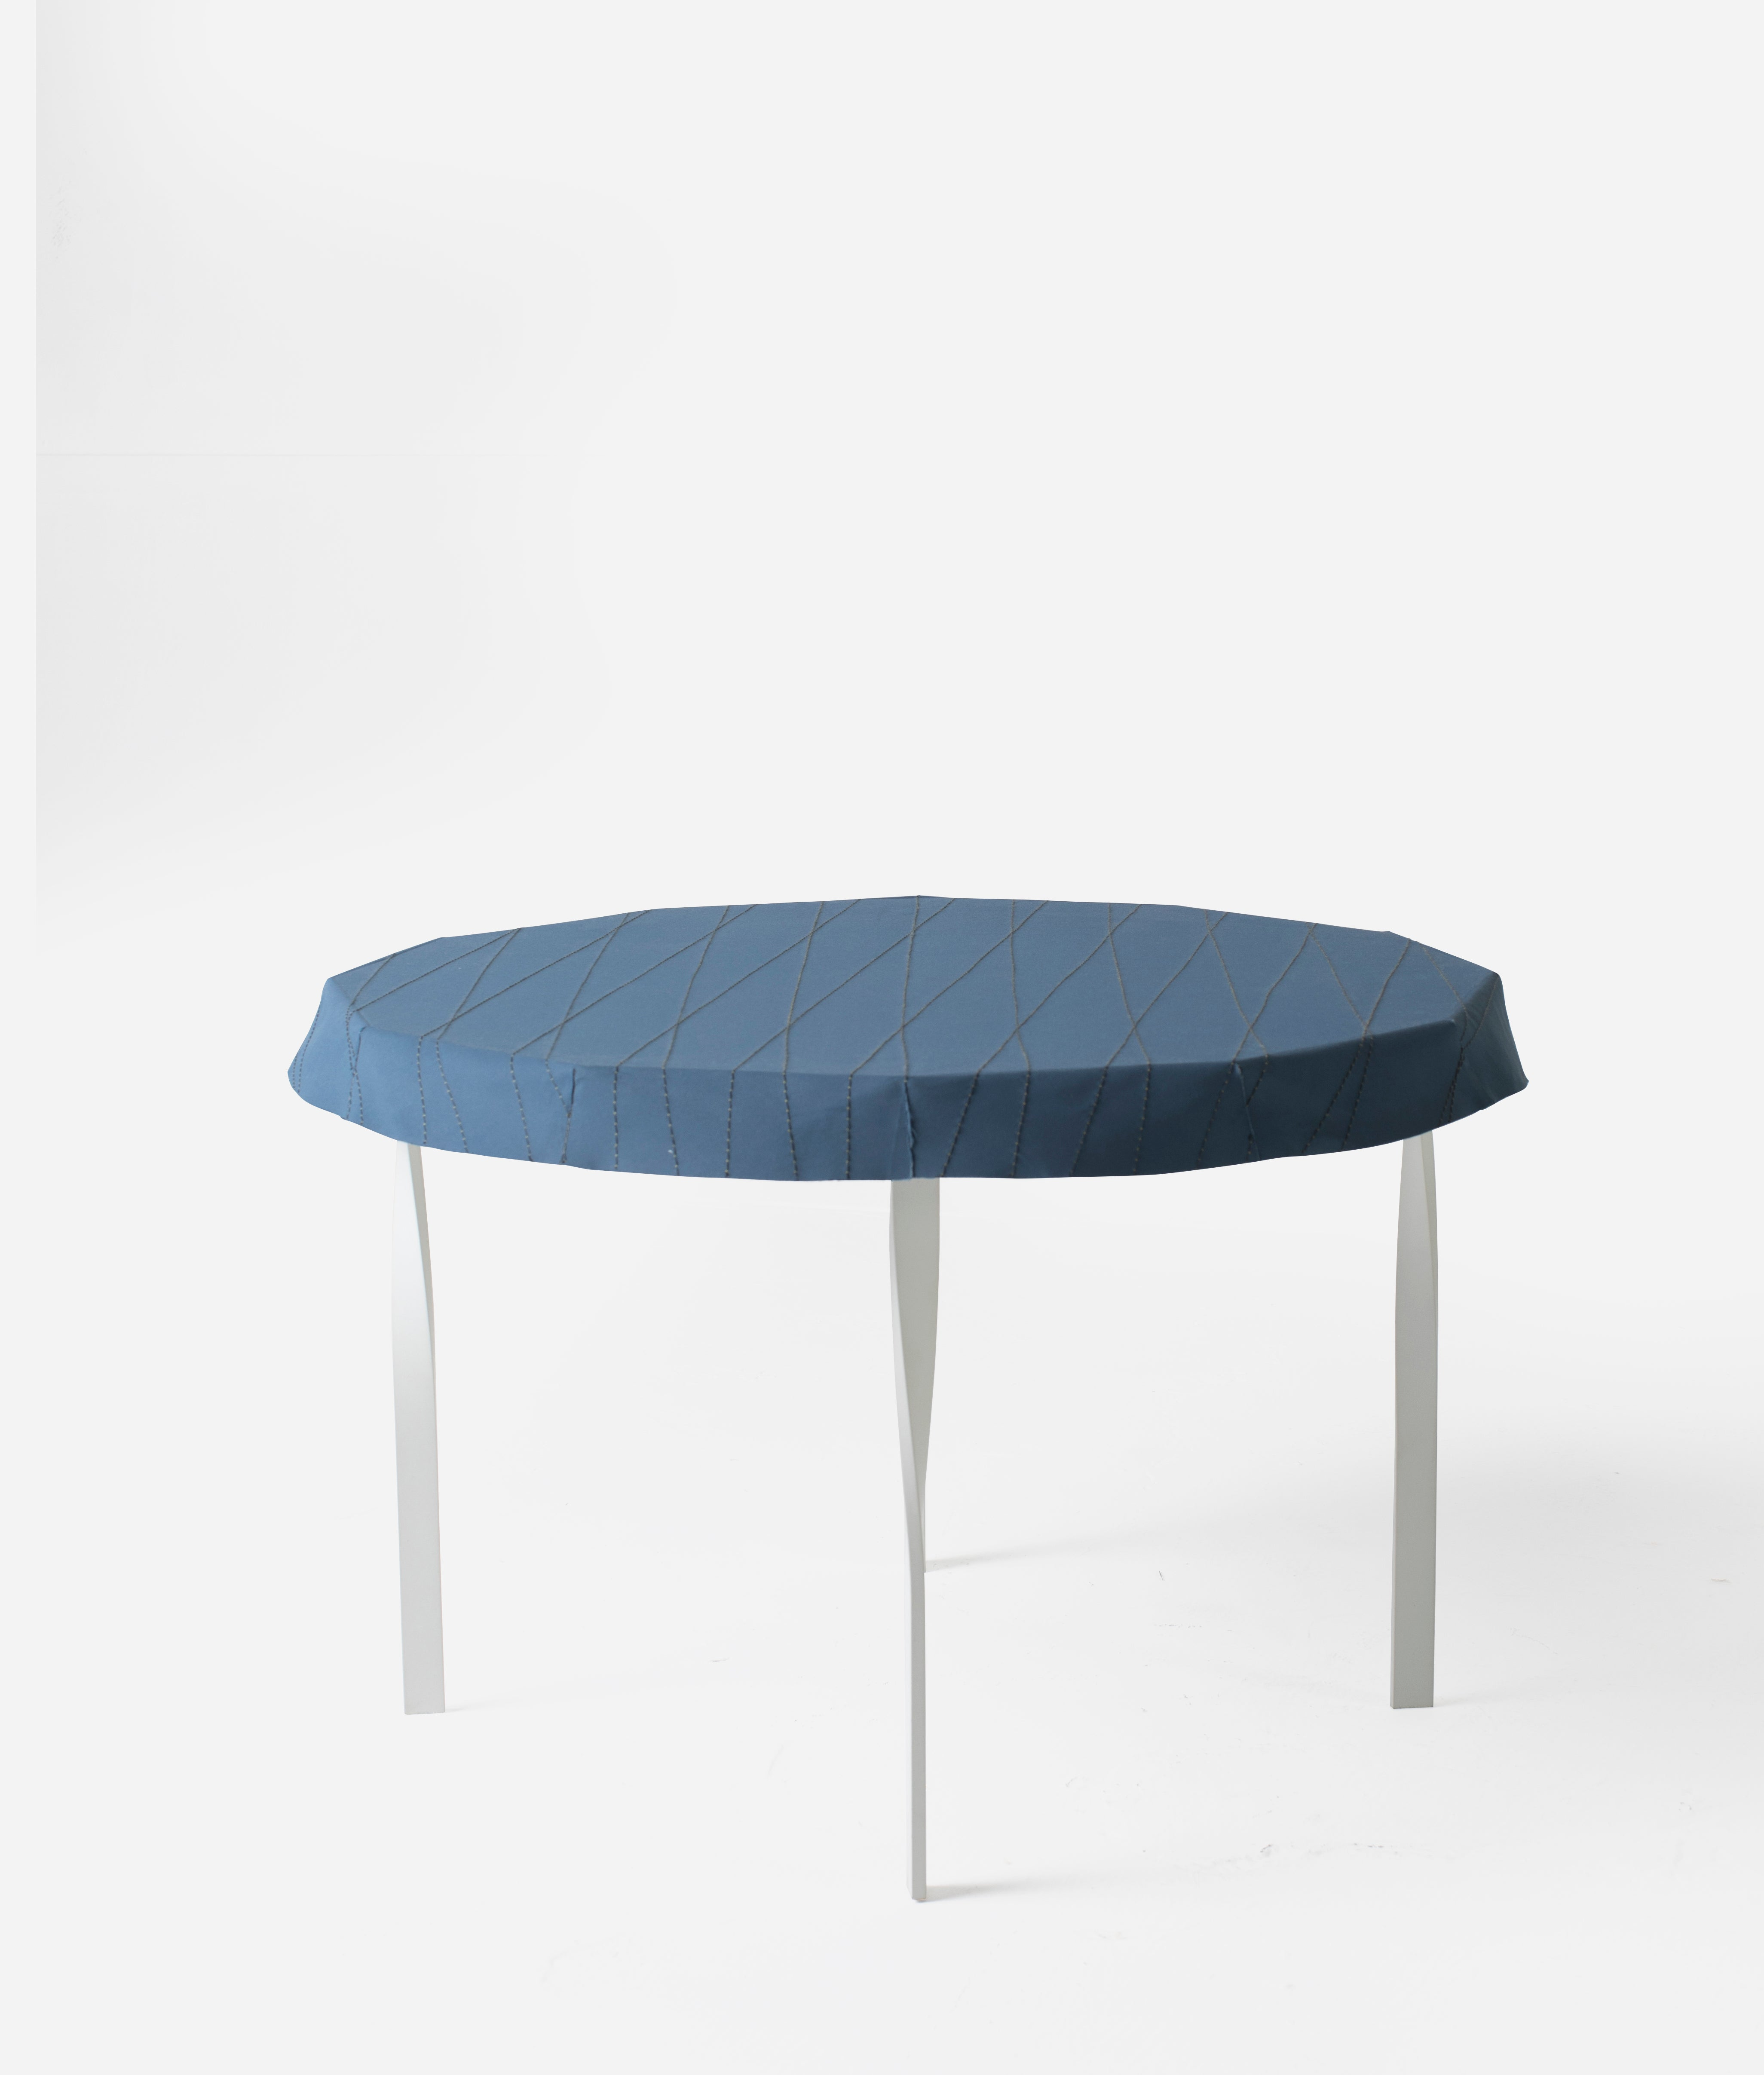 Ziinlife Lotus tea table white and navy